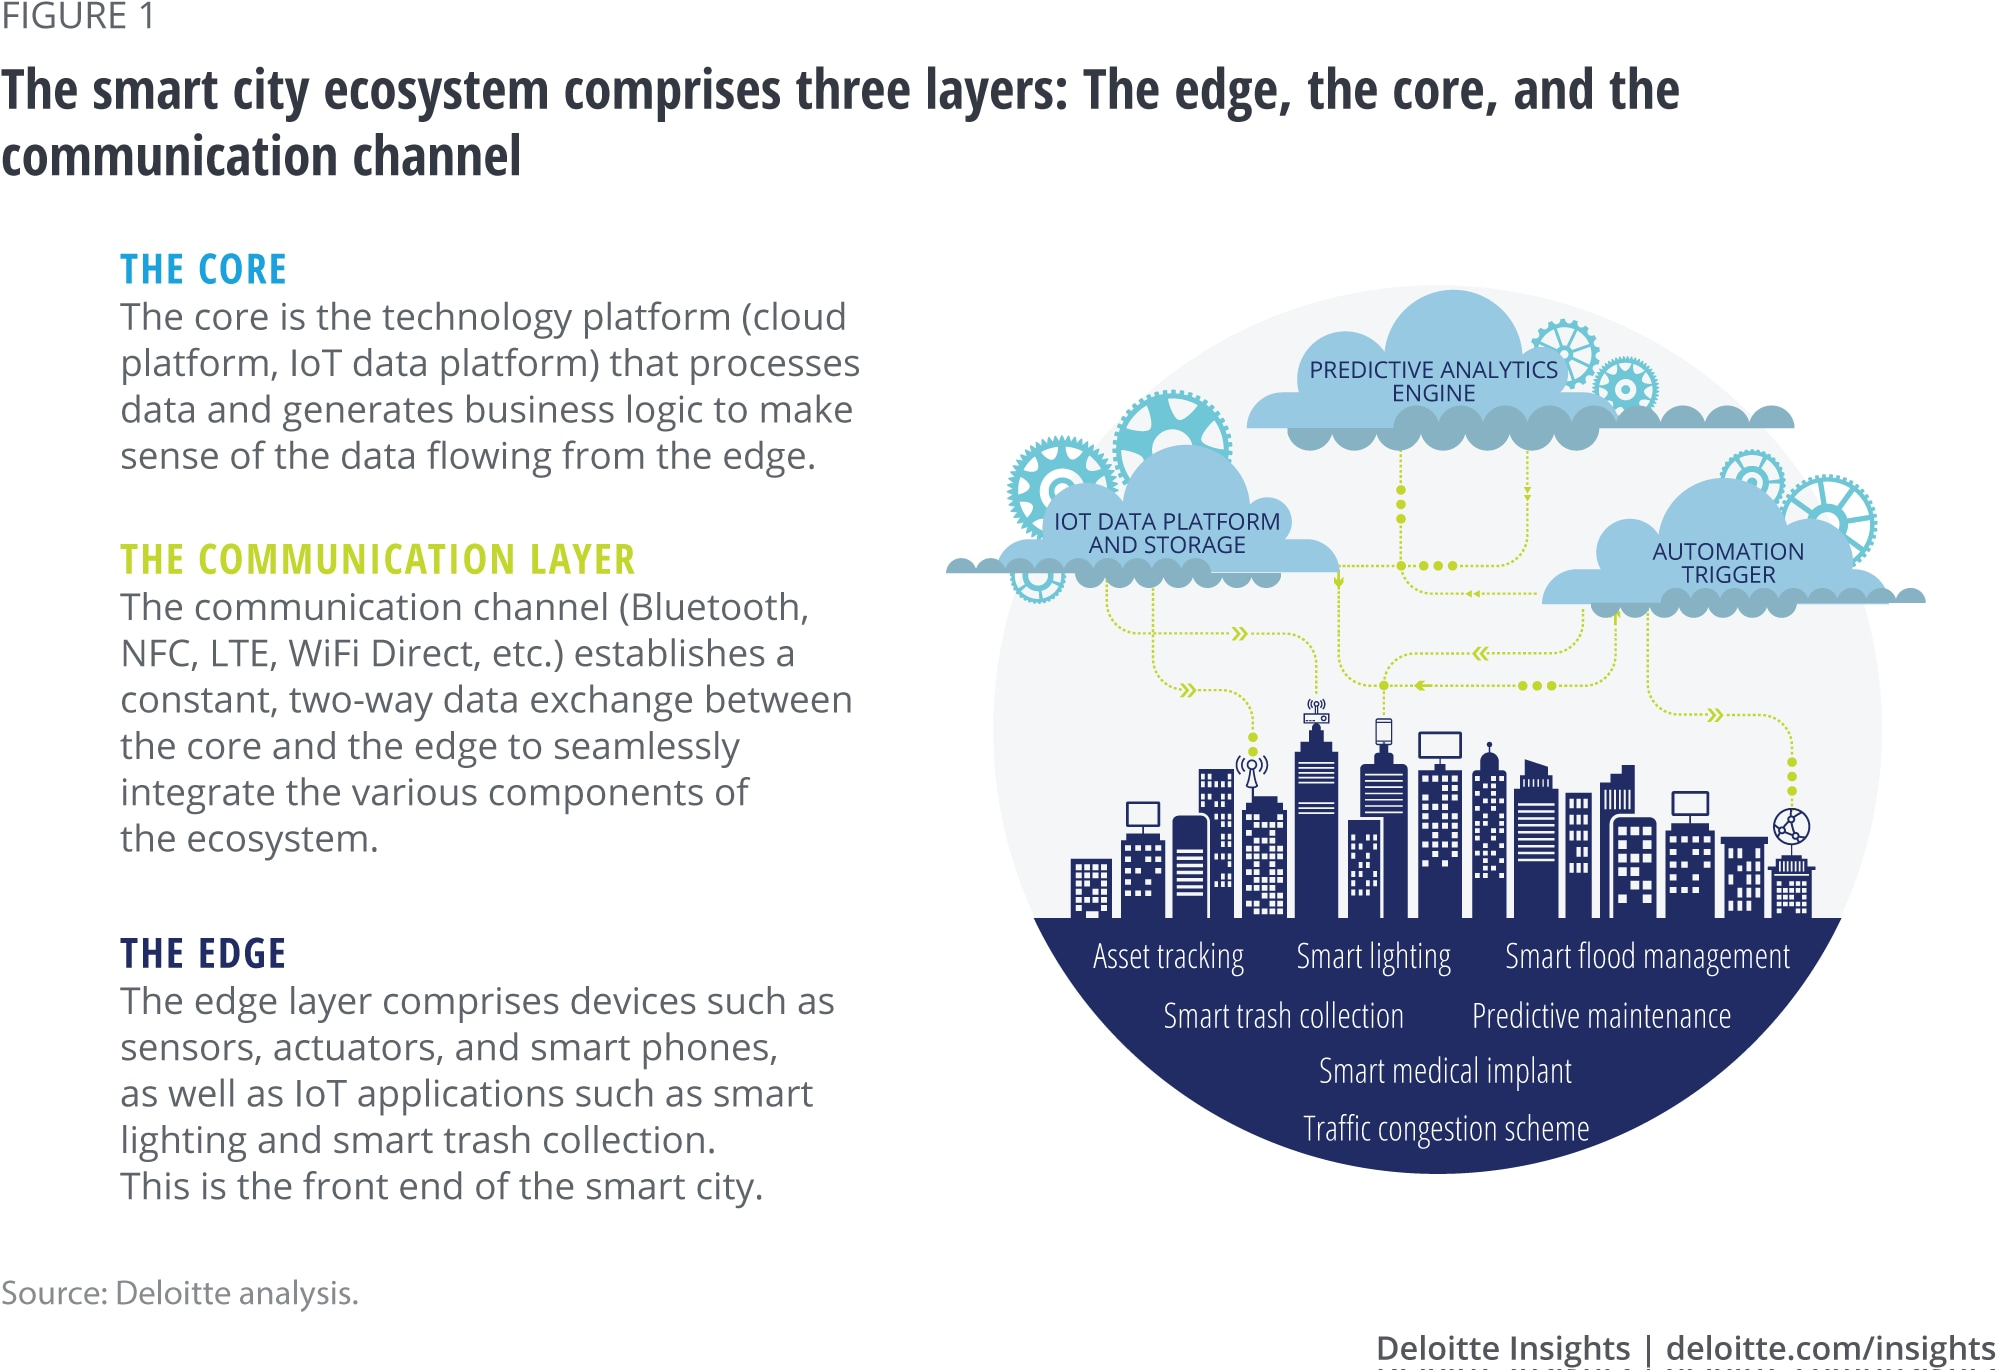 The smart city ecosystem comprises three layers: The edge, the core, and the communication channel